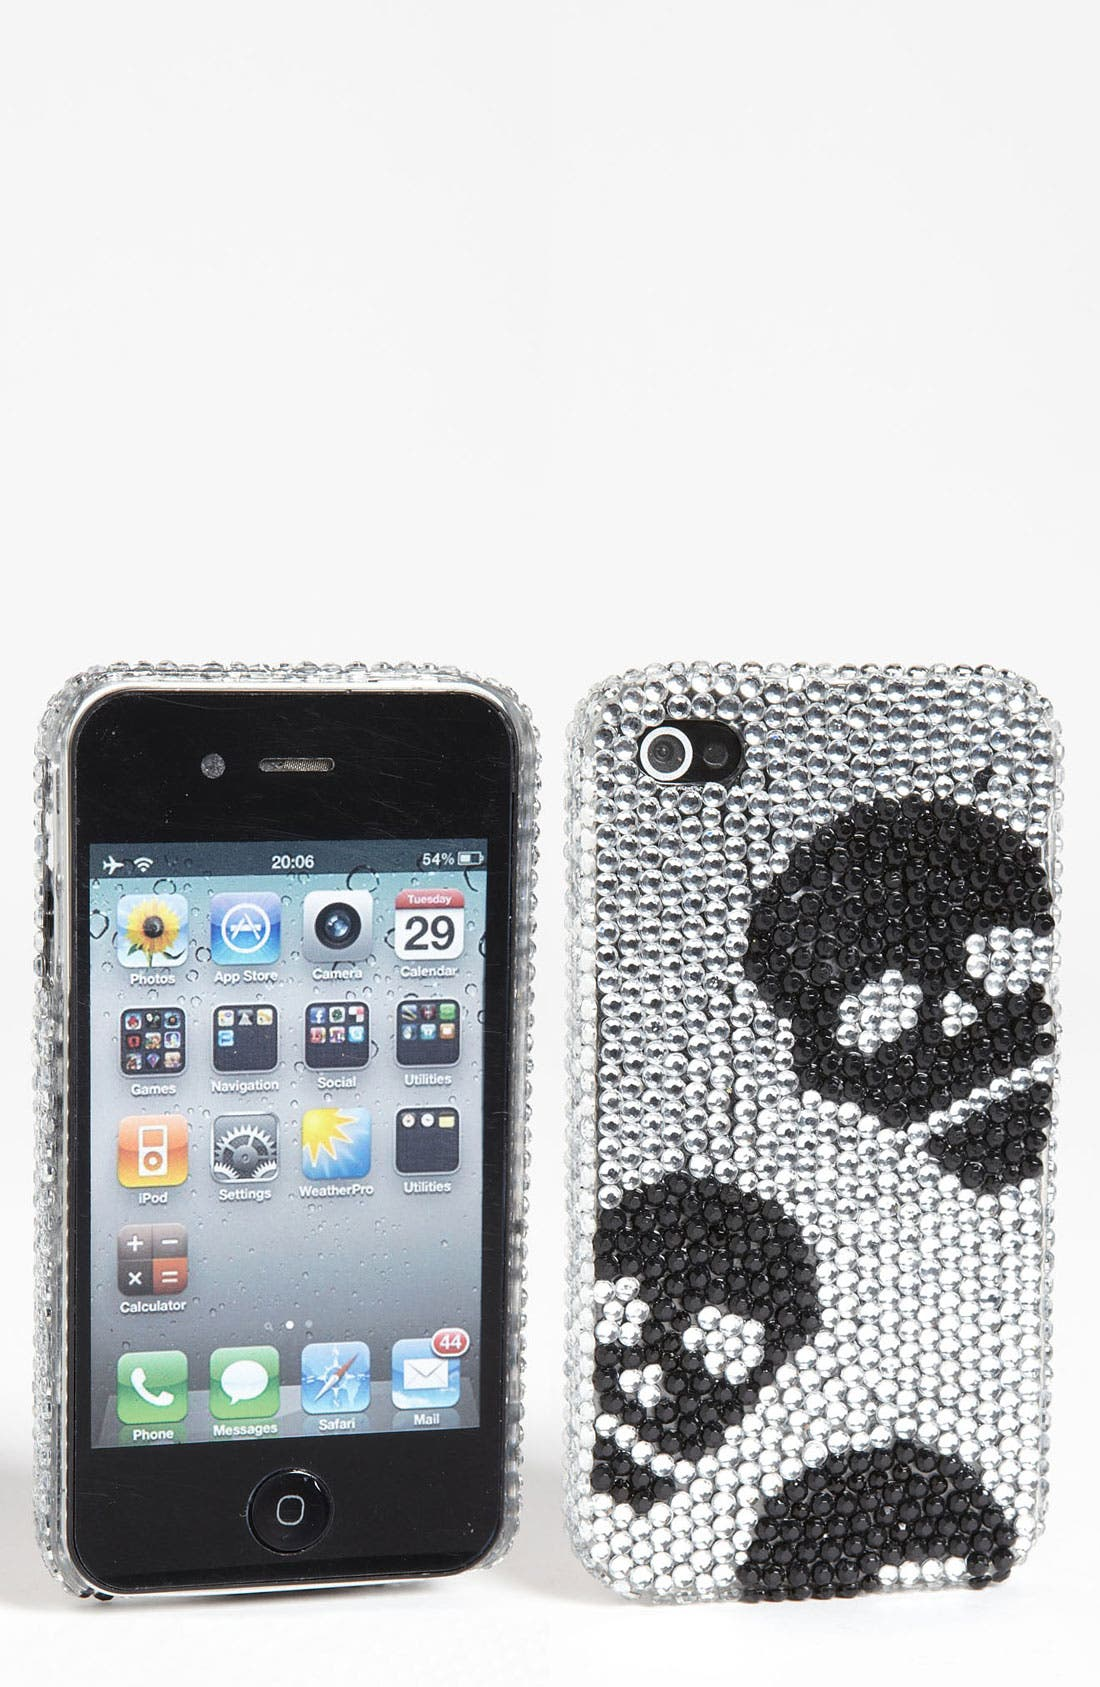 Main Image - Tri-Coastal Design iPhone 4 & 4s Skull Rhinestone Case